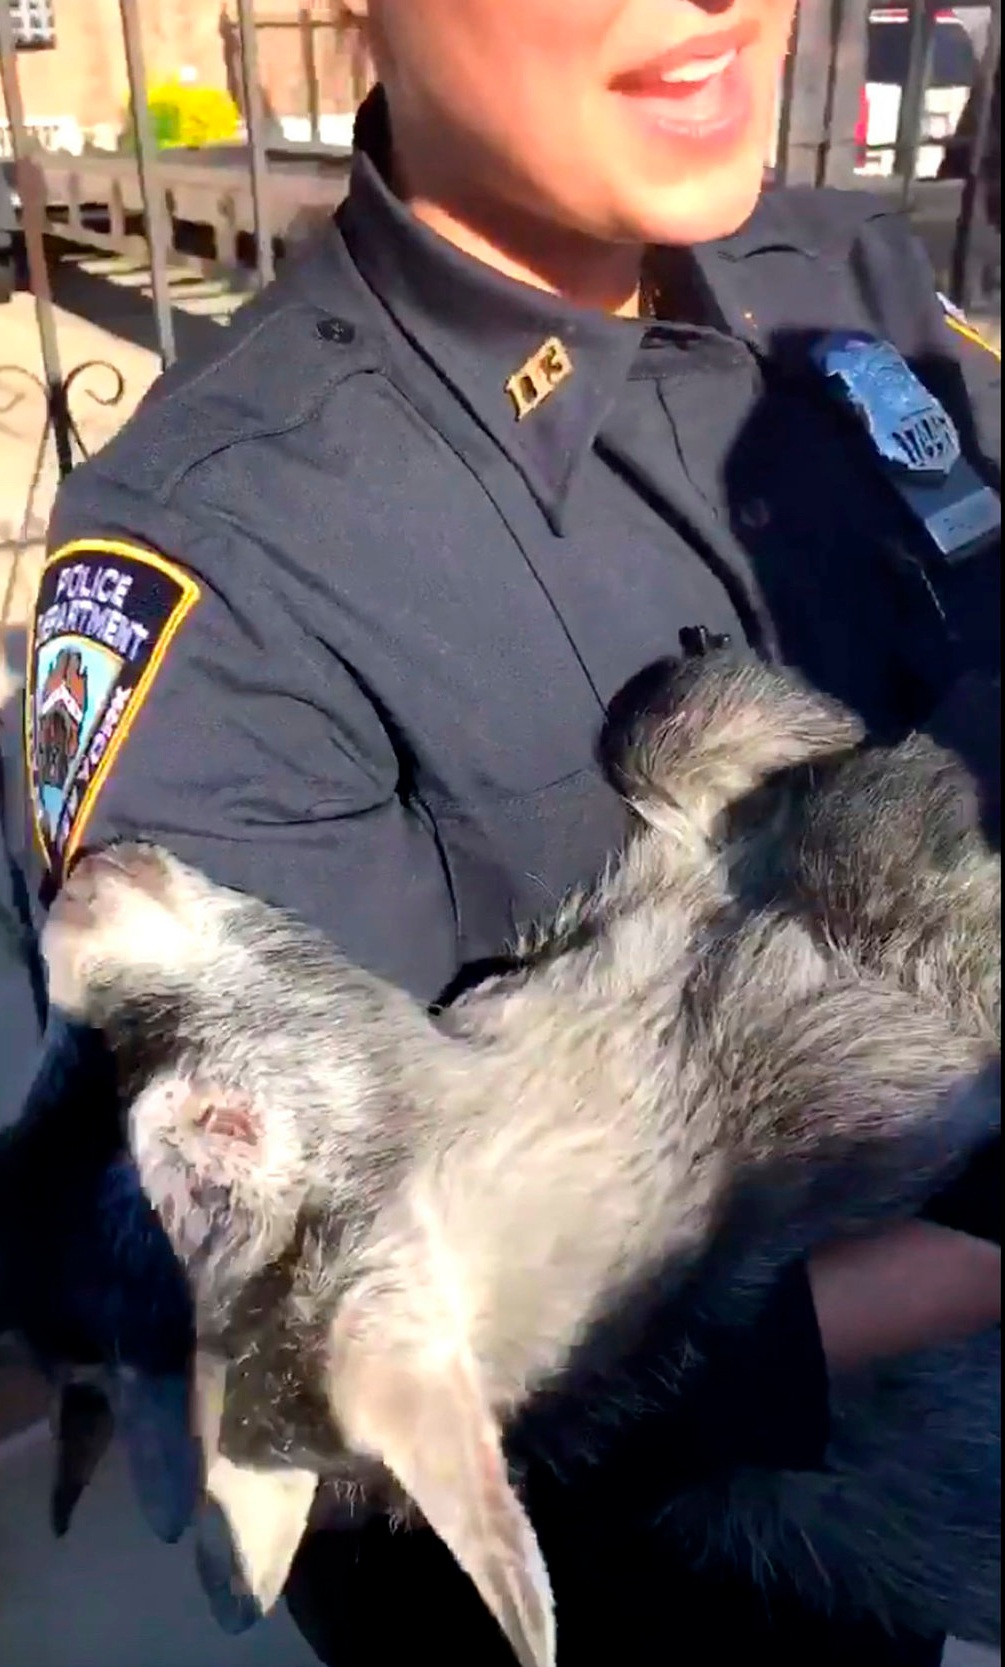 An NYPD officer from the 113th Precinct carries a goat out a backyard in Queens. Photo by New York City Police Department via AP